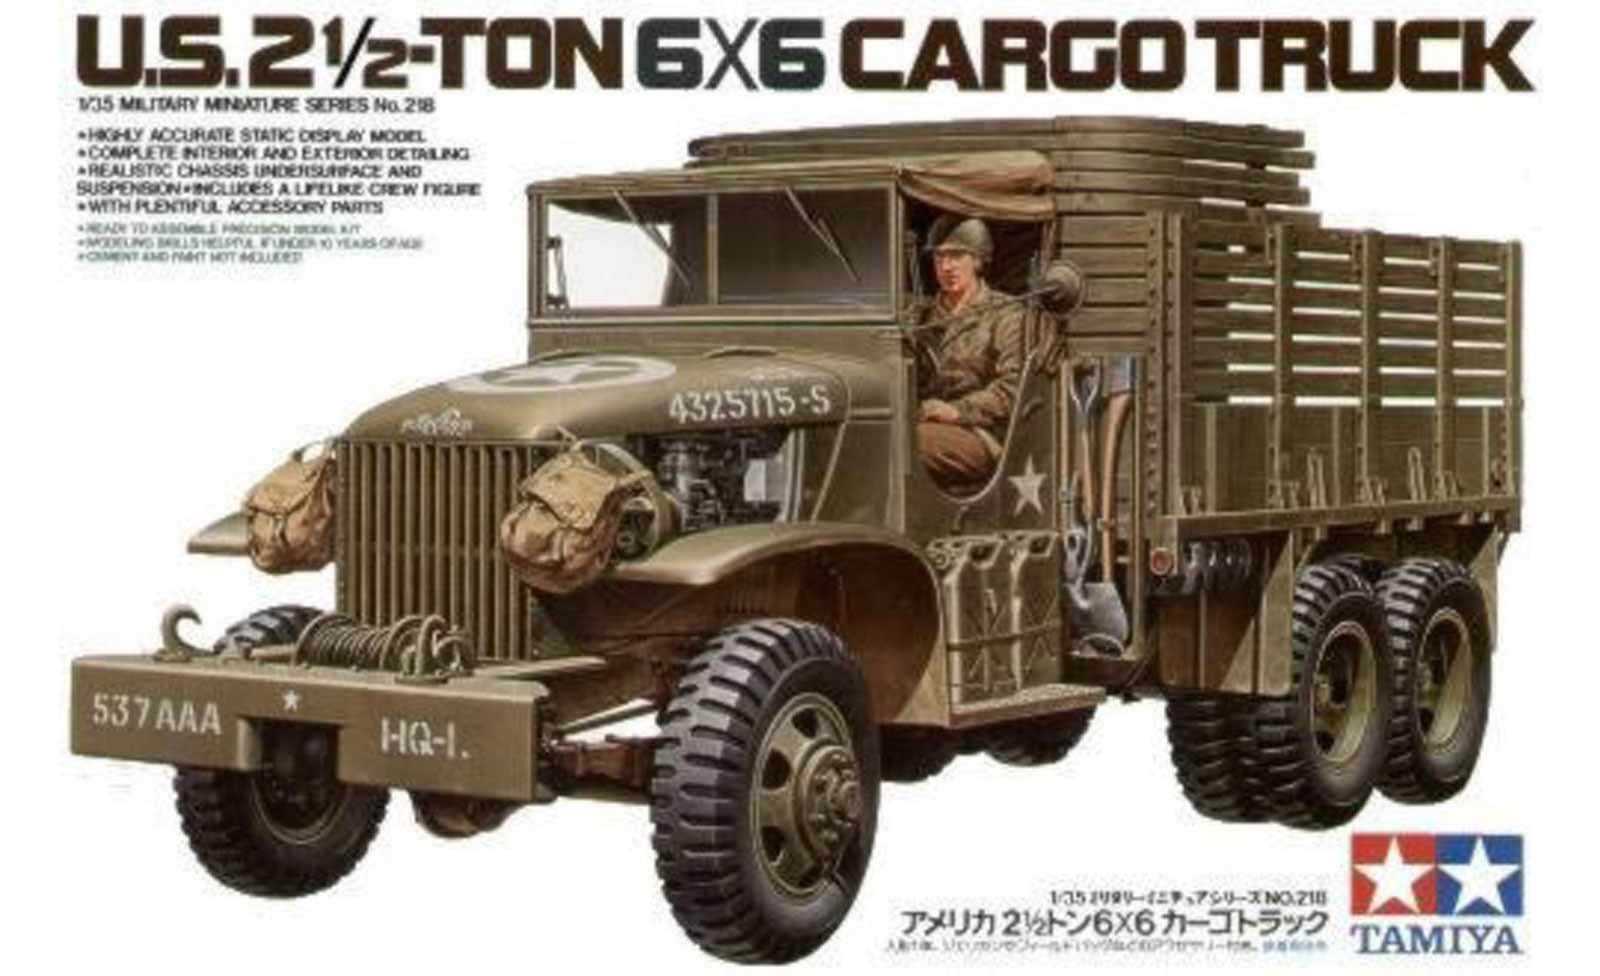 Allied 2.5 Ton 6x6 Cargo Truck - Tamiya 35218 - plastic model kit - 1/35 scale